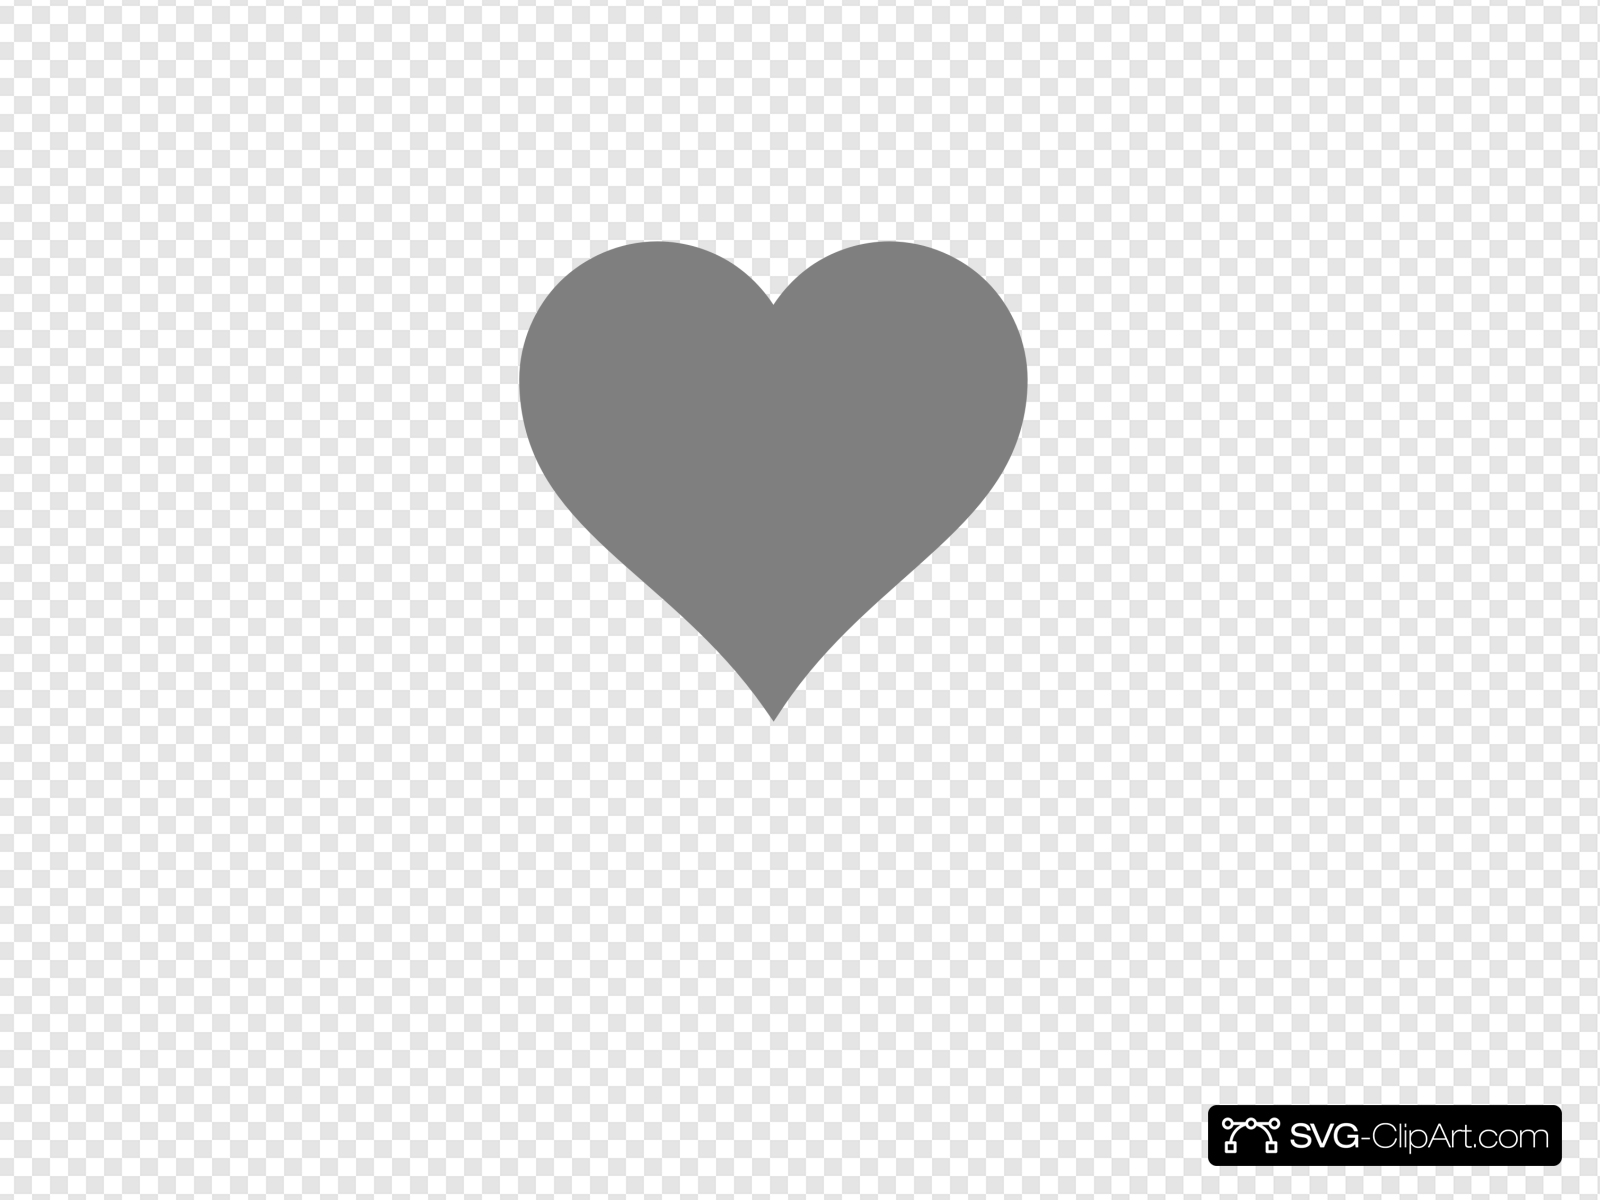 Solid Dark Grey Heart Clip art, Icon and SVG.